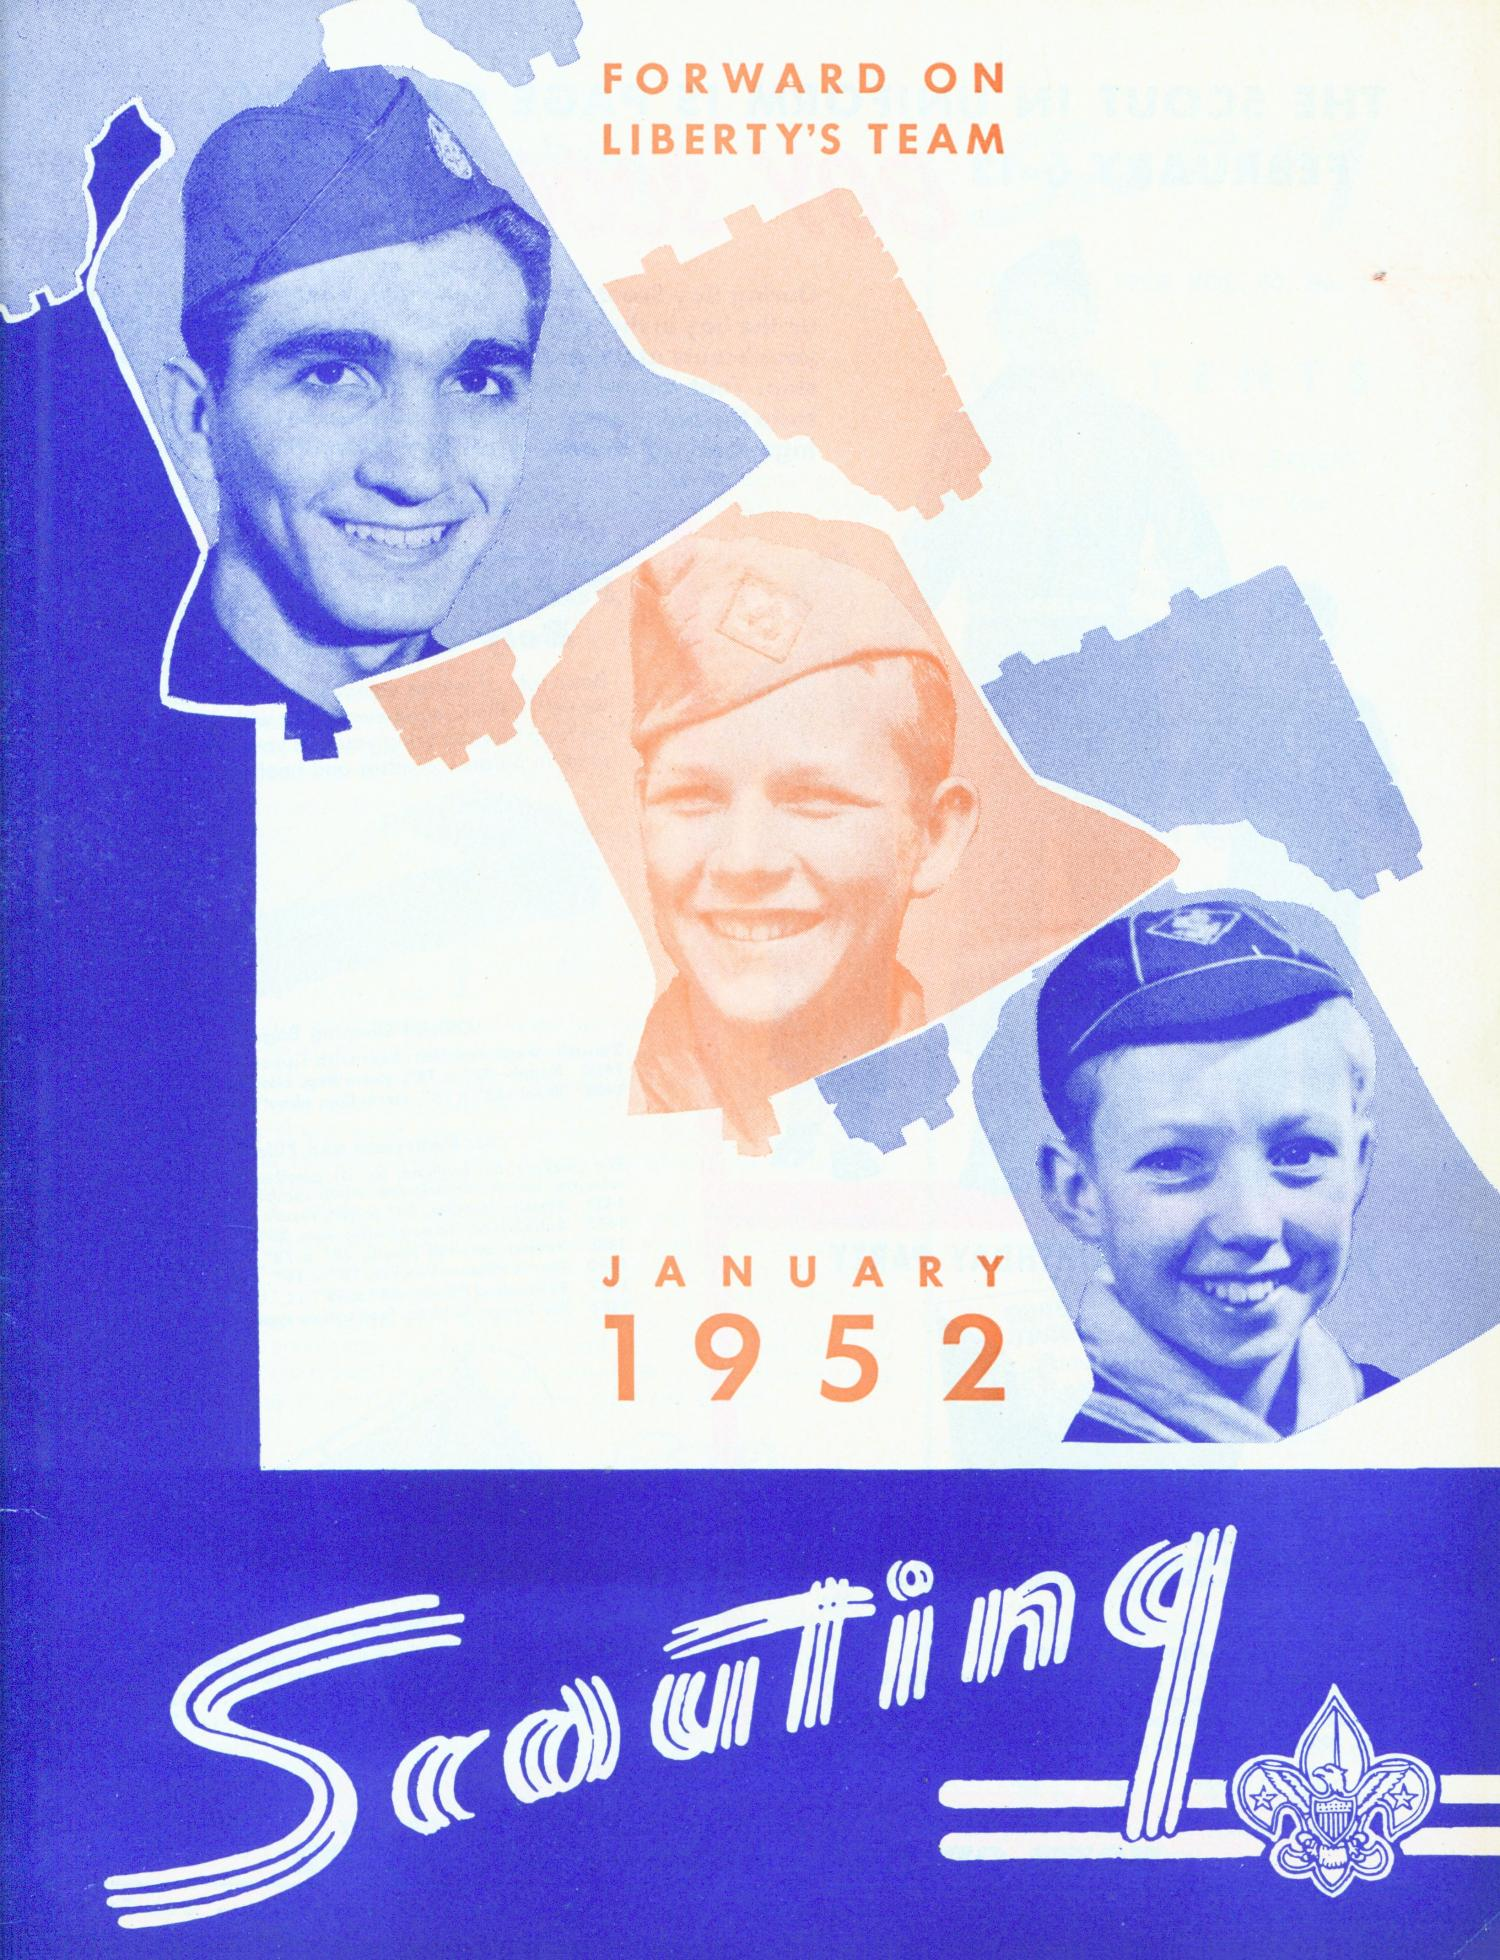 Scouting, Volume 40, Number 1, January 1952                                                                                                      Front Cover